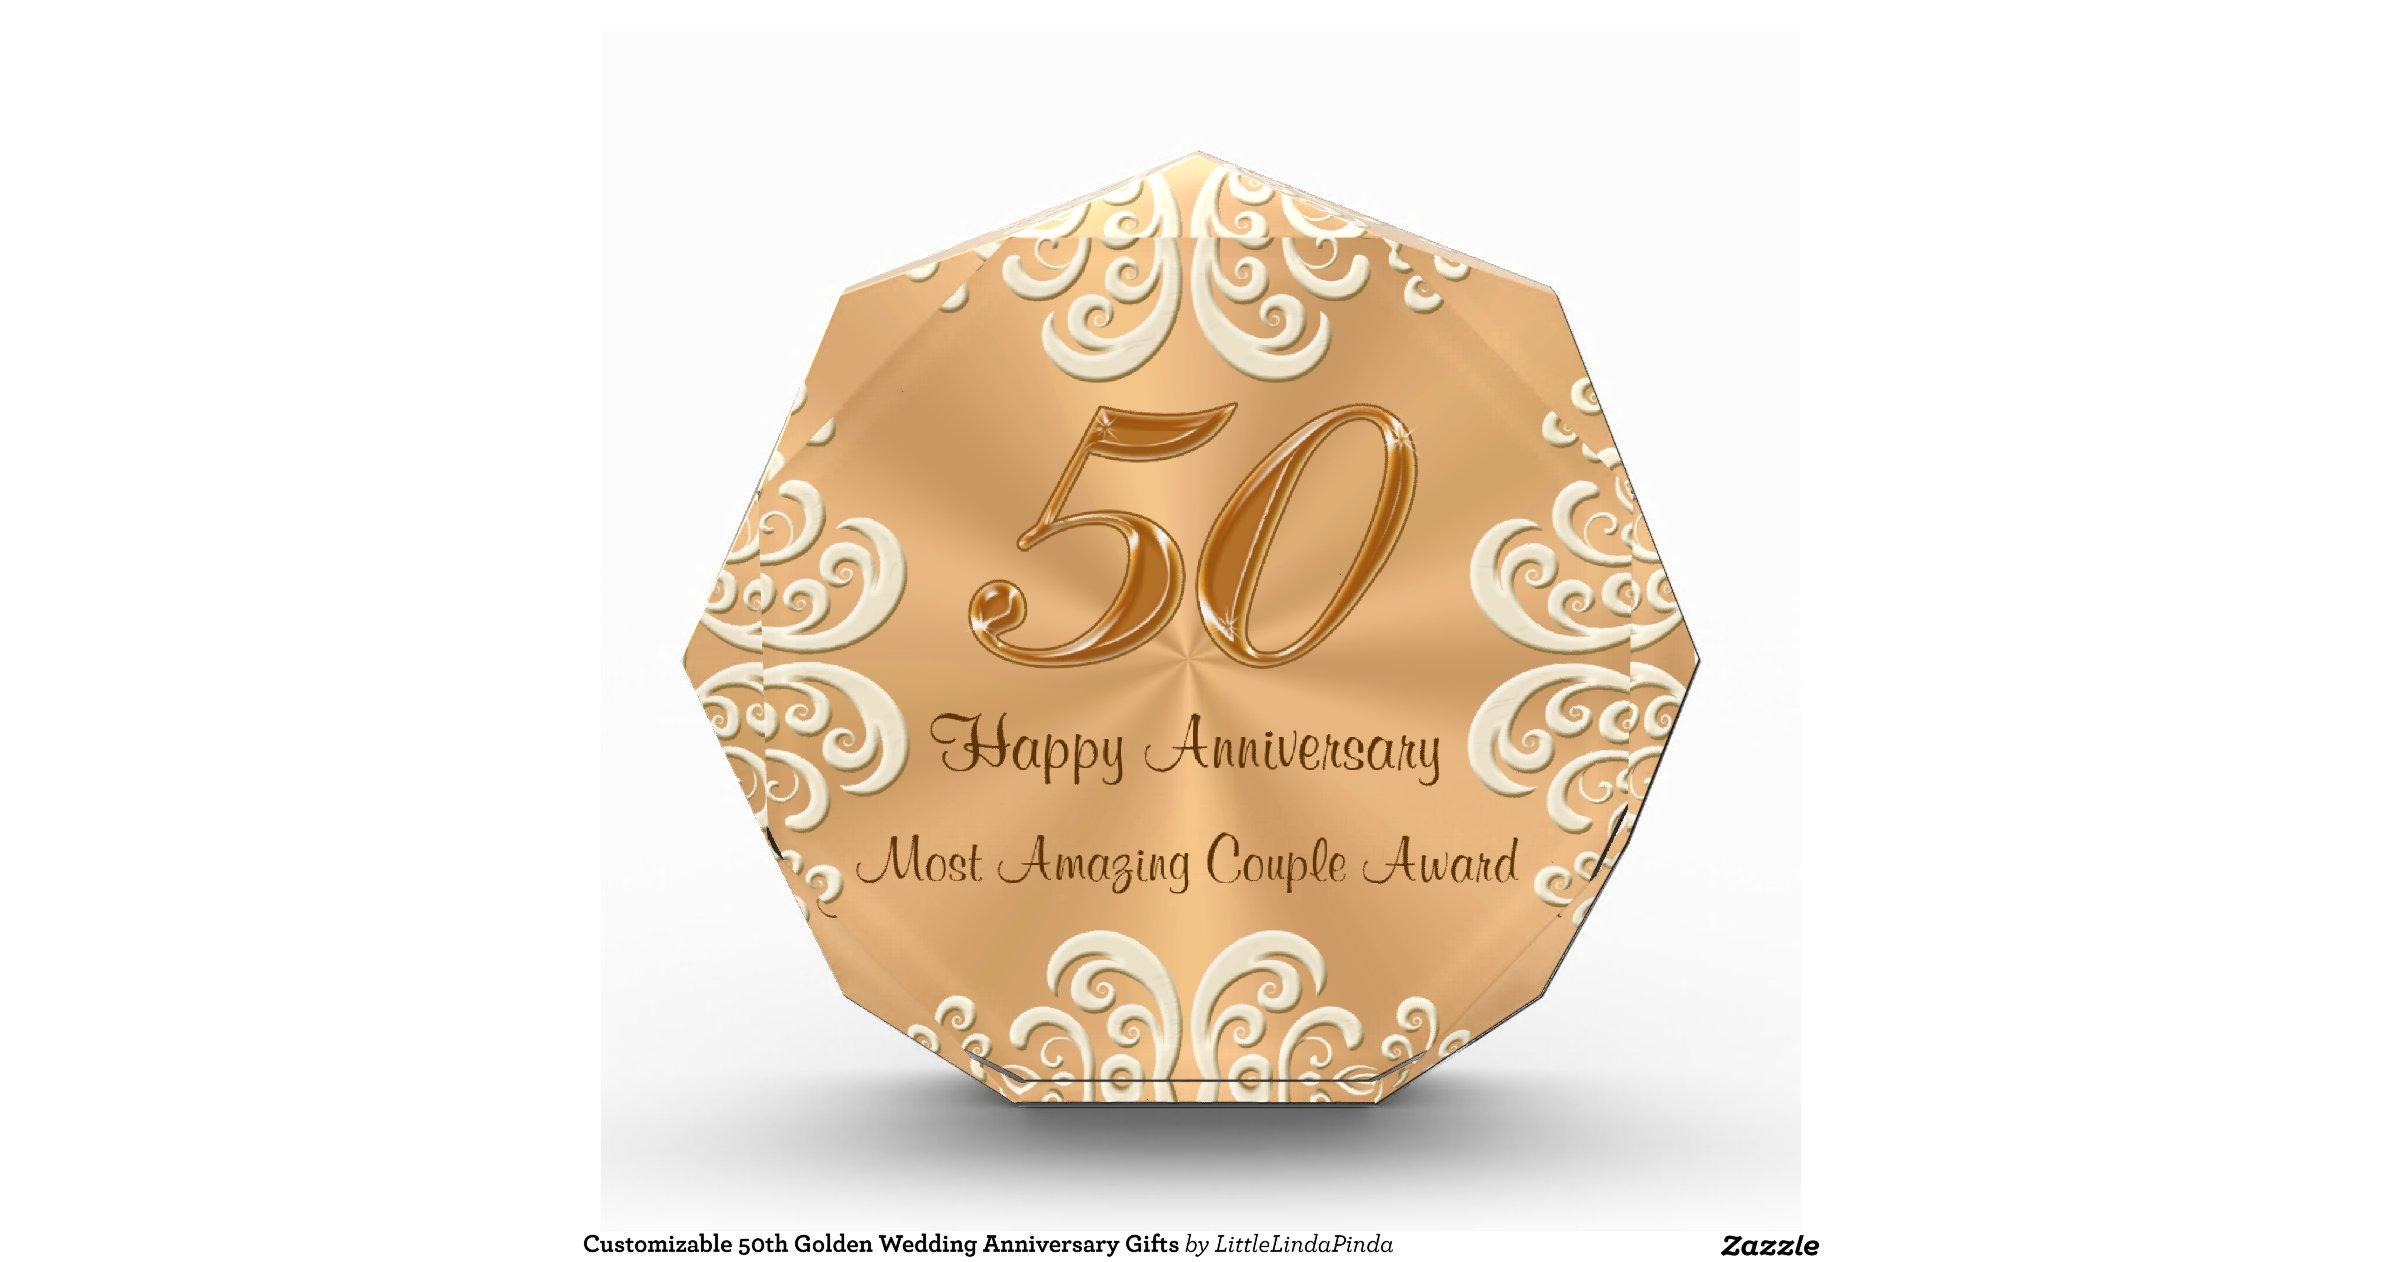 Golden Wedding Gifts Ideas: Customizable 50th Golden Wedding Anniversary Gifts Awards